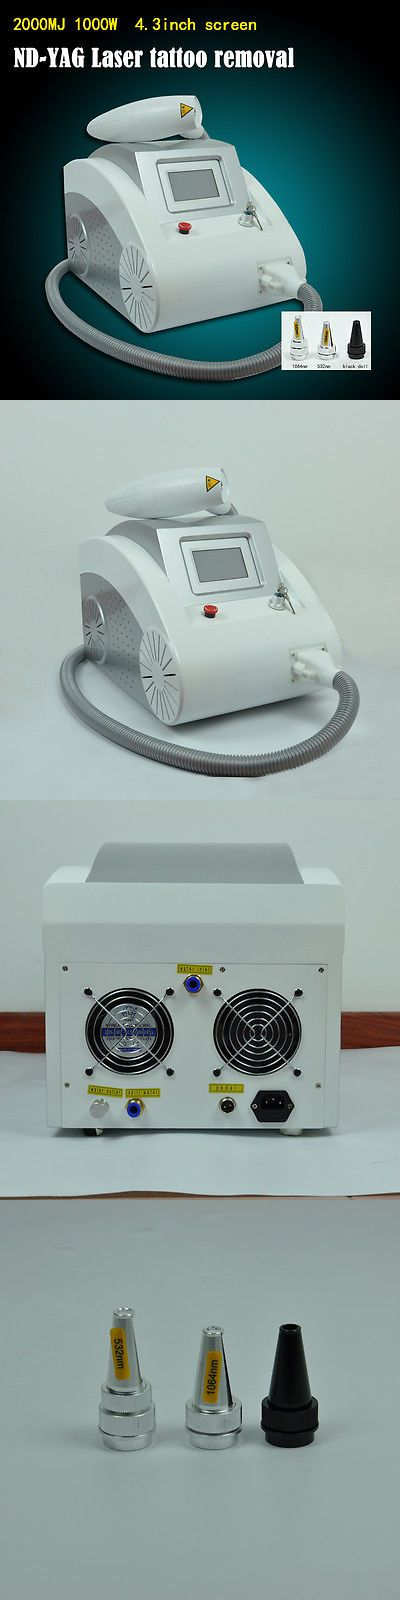 Tattoo Removal Machines: Professional Q-Switched Nd Yag Laser For Skin Tattoo Removal Machine New BUY IT NOW ONLY: $1553.0